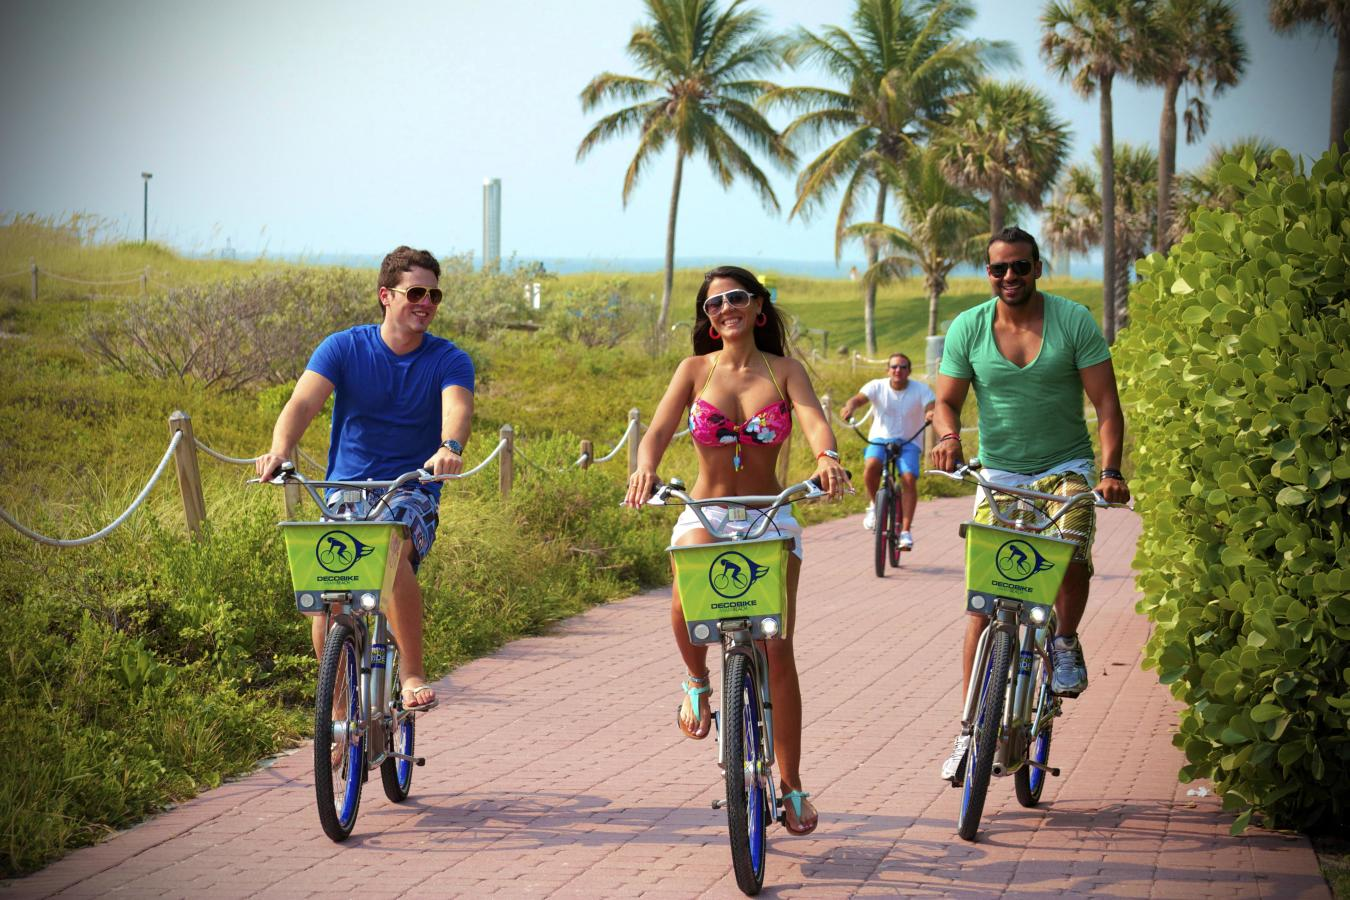 Citi Bike Miami >> Citibike Miami Powered By Decobike In Miami Beach South Beach Fl